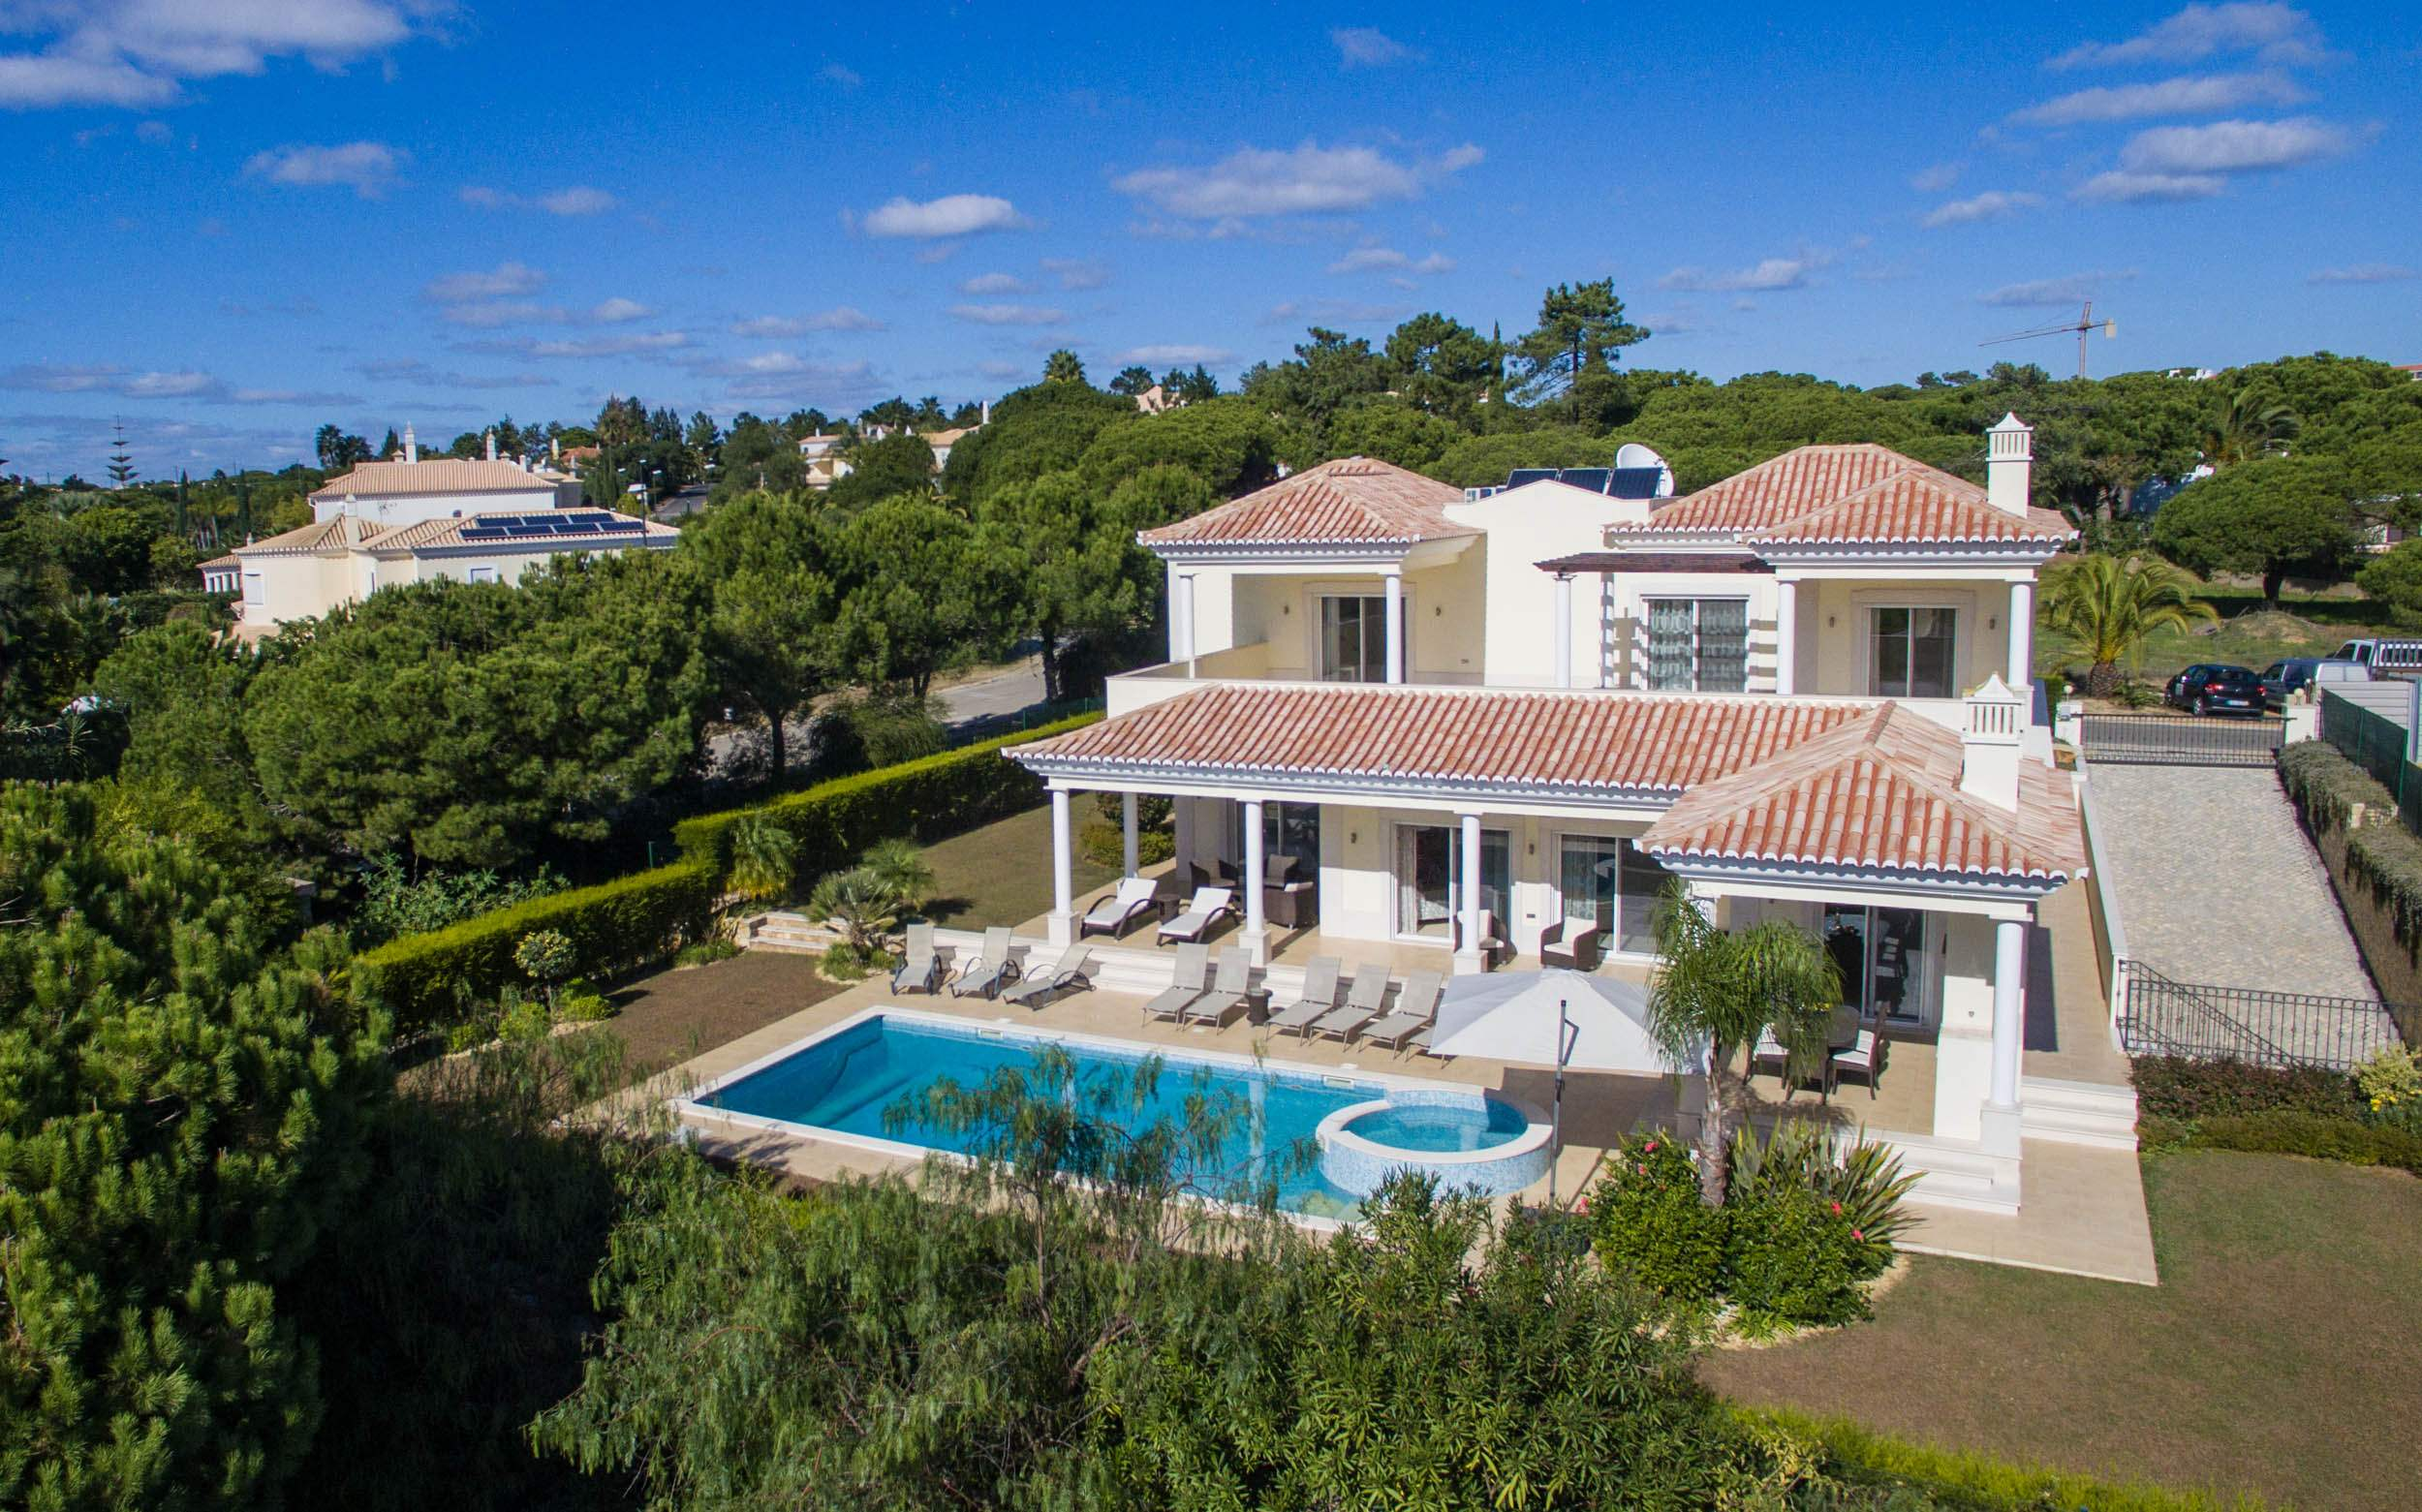 Villa Vida Doce, 6 bedroom villa in Vilamoura Area, Algarve Photo #9